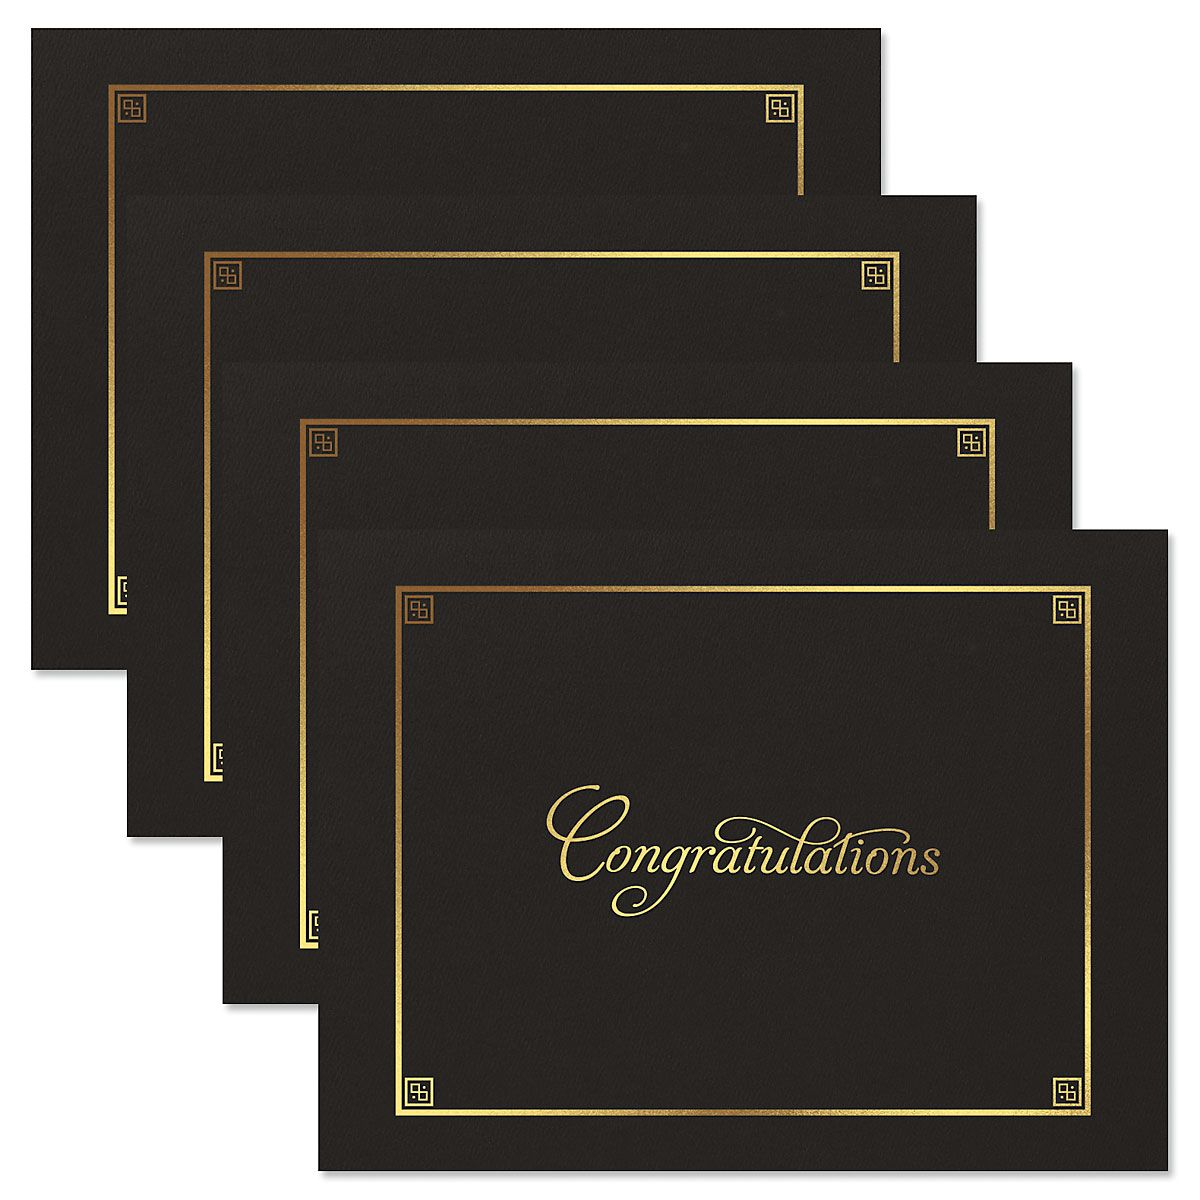 Congratulations Black Certificate Jacket with Gold Border